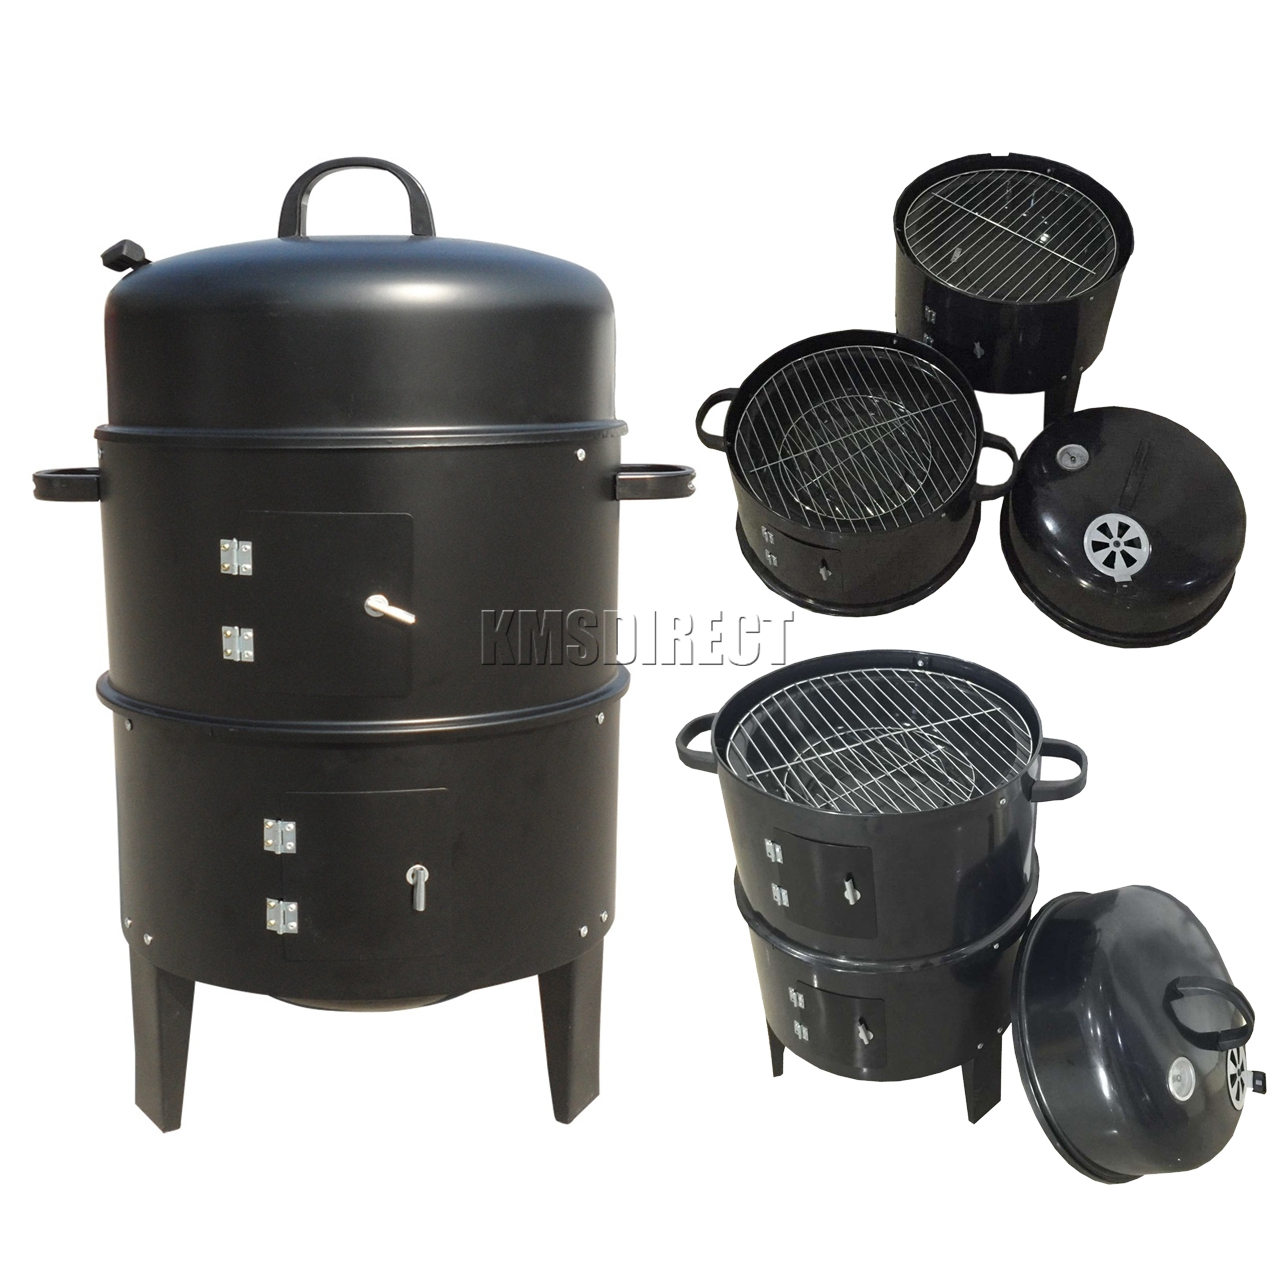 Charcoal For Bbq Foxhunter Black Bbq Charcoal Grill Barbecue Smoker Garden